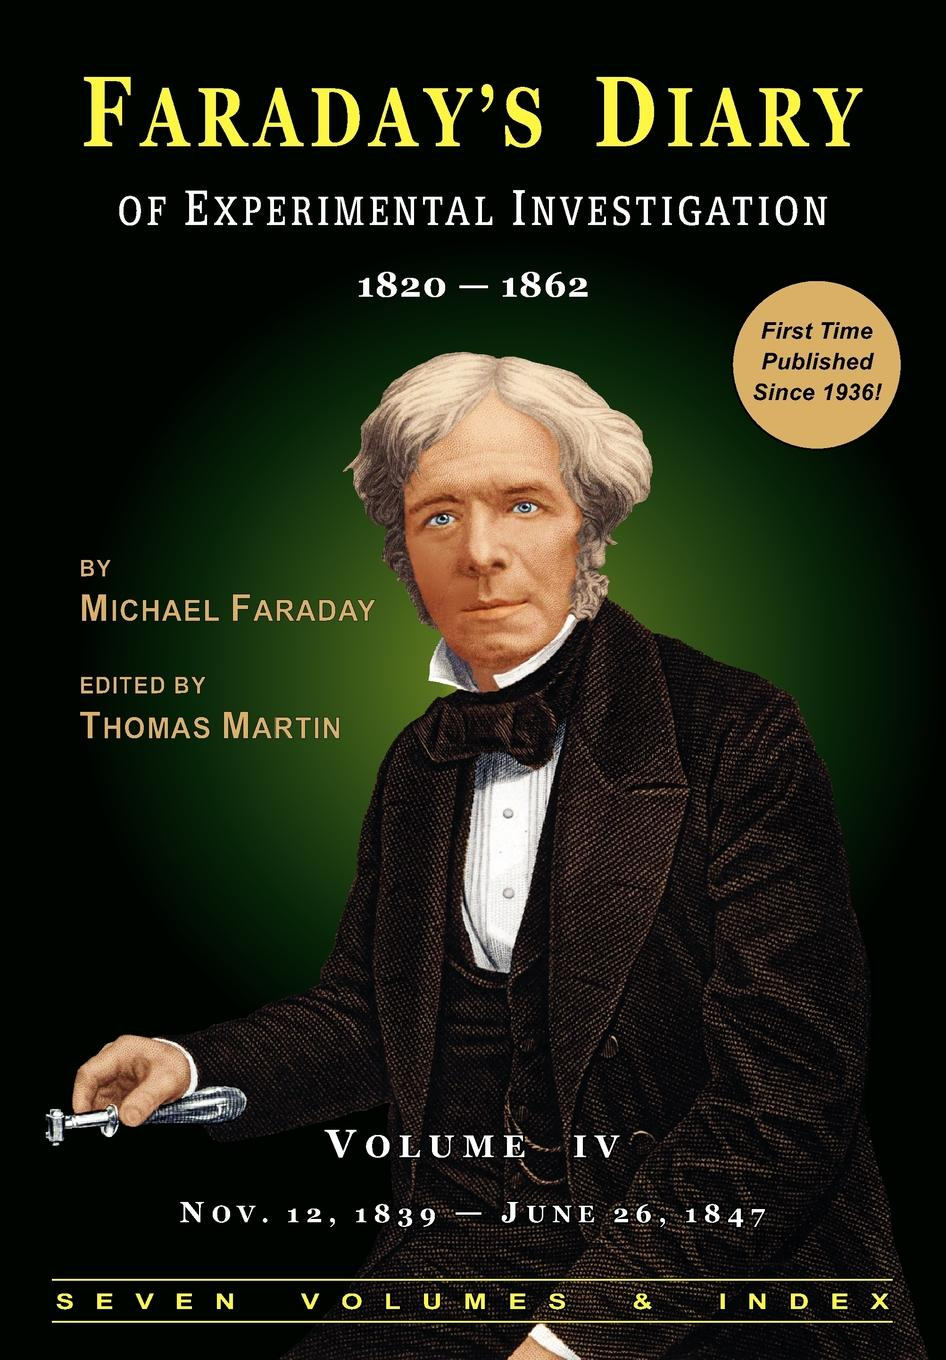 Michael Faraday F Diary of Experimental Investigation - 2nd edition, Vol. 4